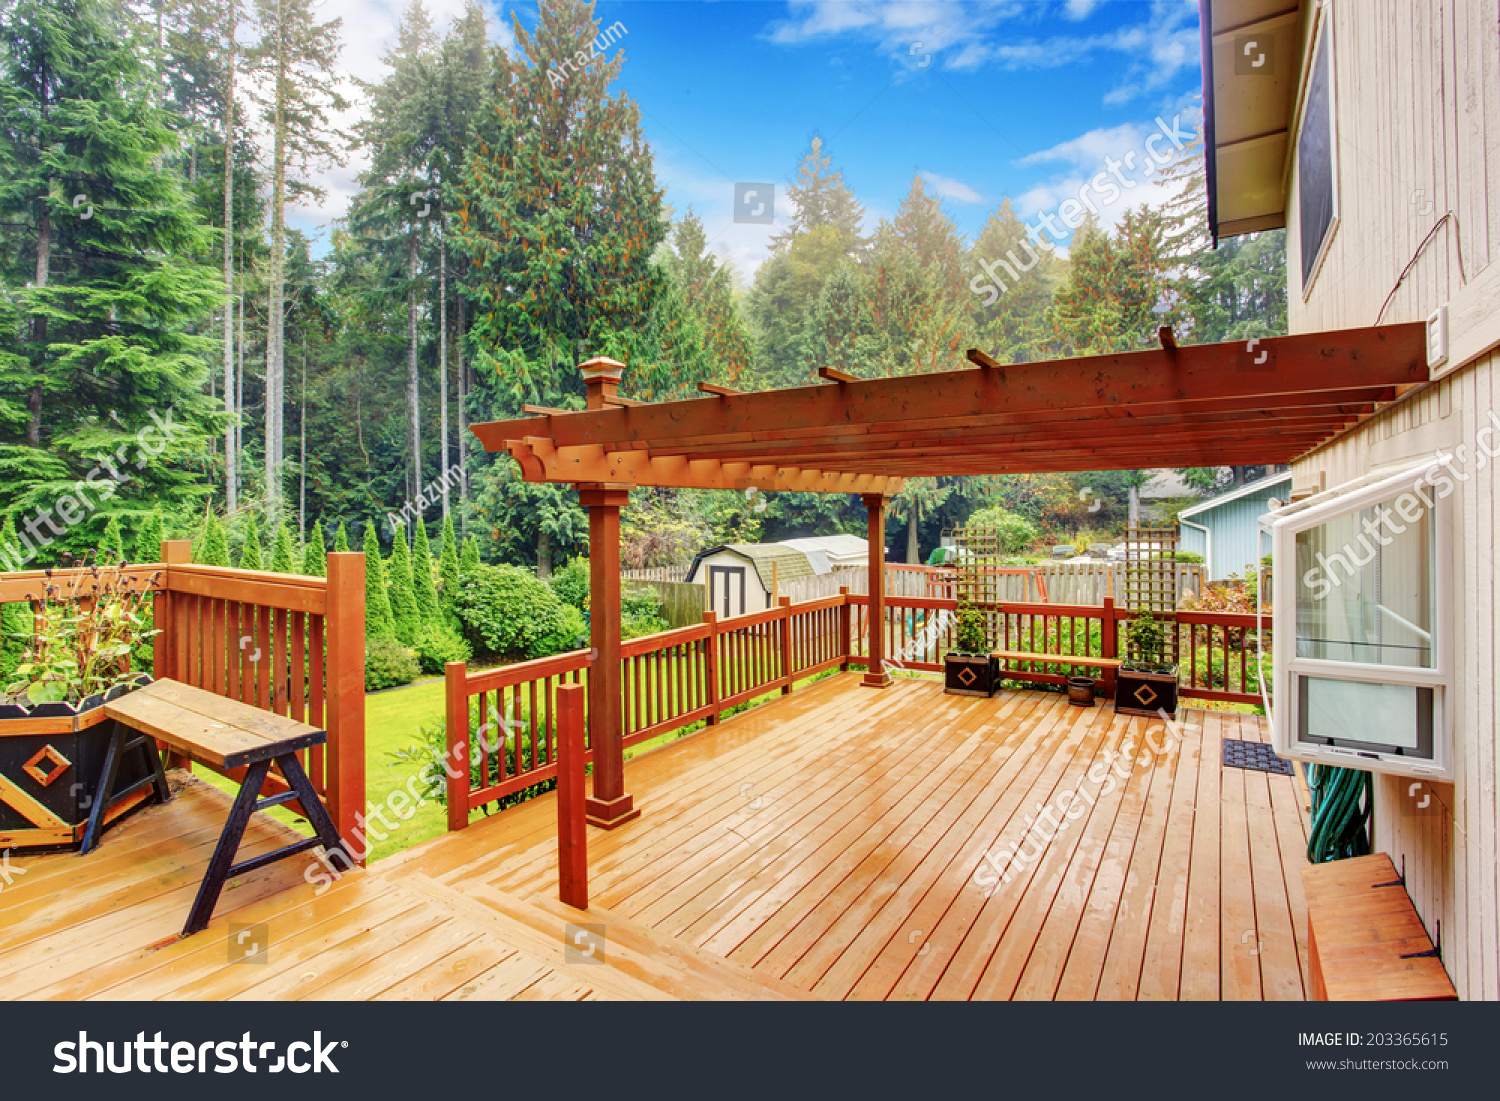 Attaching deck to house building science - Spacious Wooden Deck With Benches And Attached Pergola